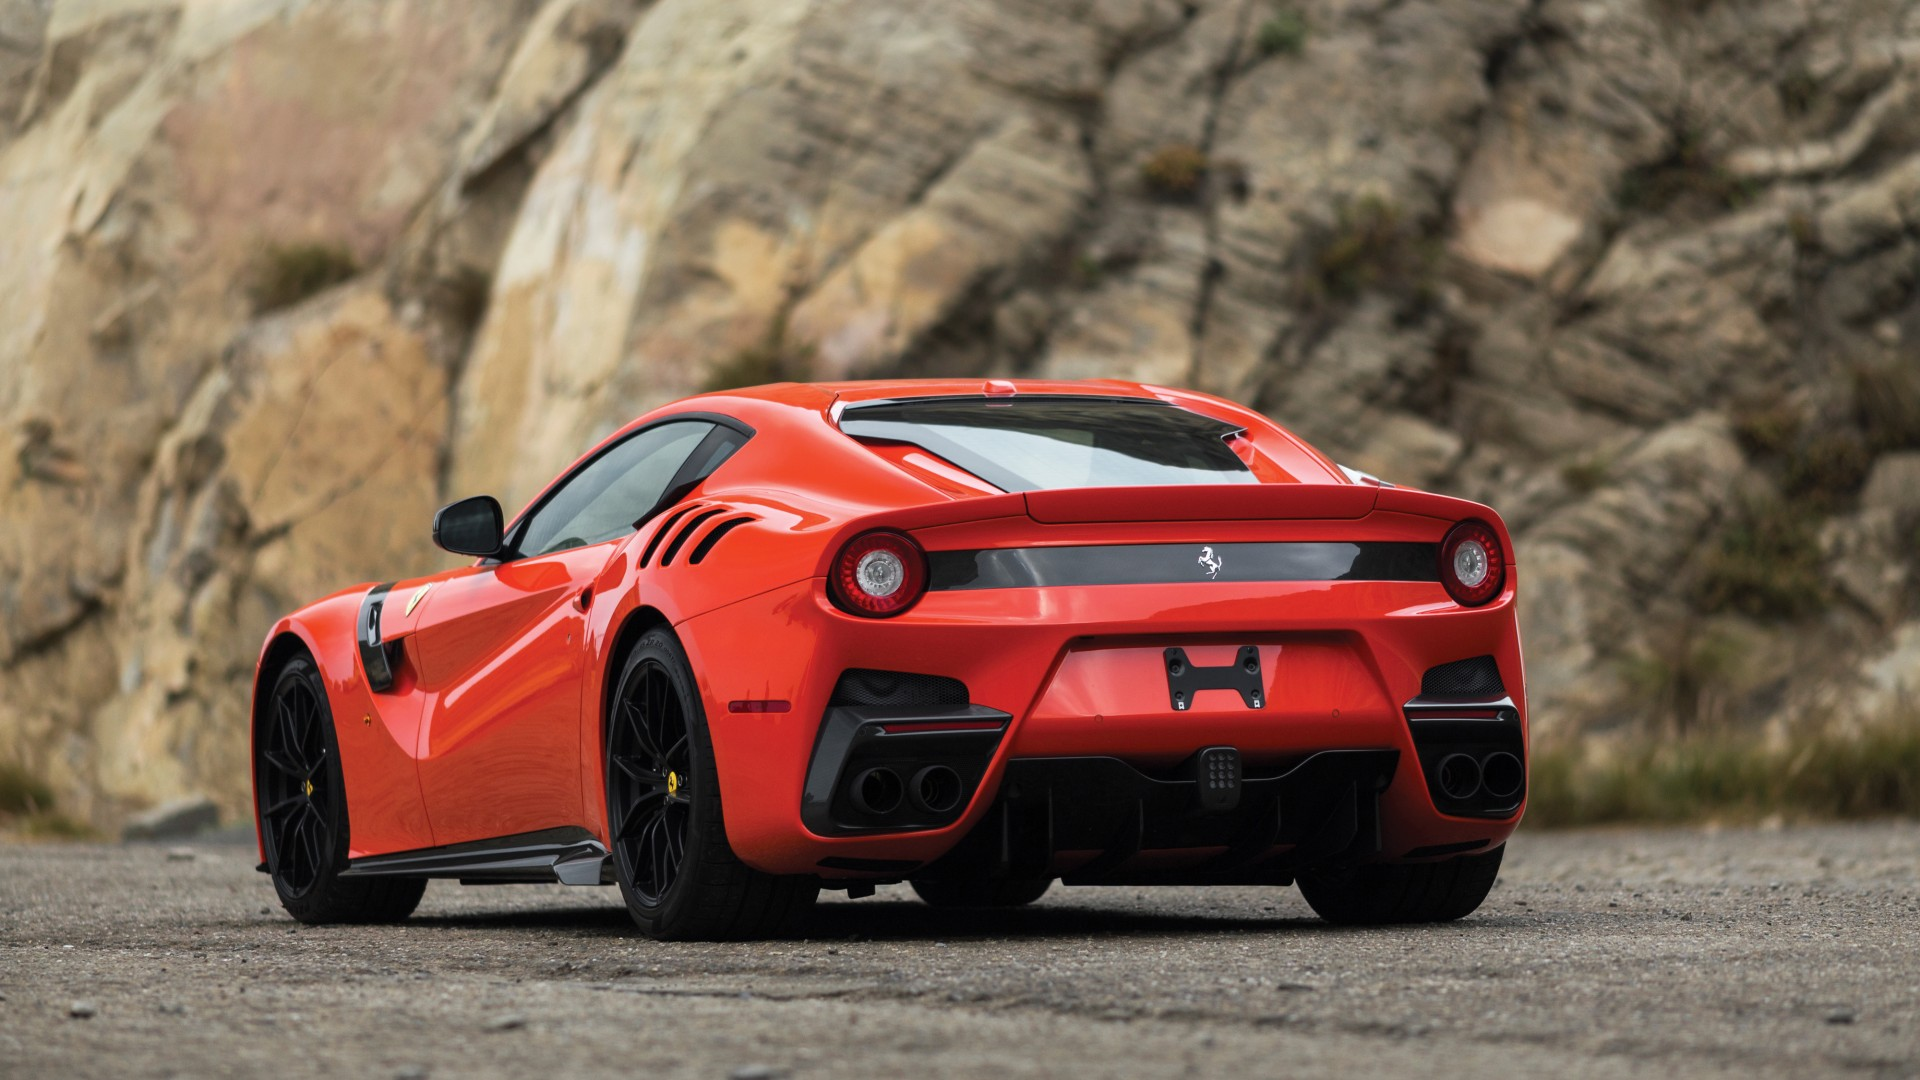 Ferrari f12tdf 2017 4k 2 wallpaper hd car wallpapers - Wallpaper hd 4k car ...